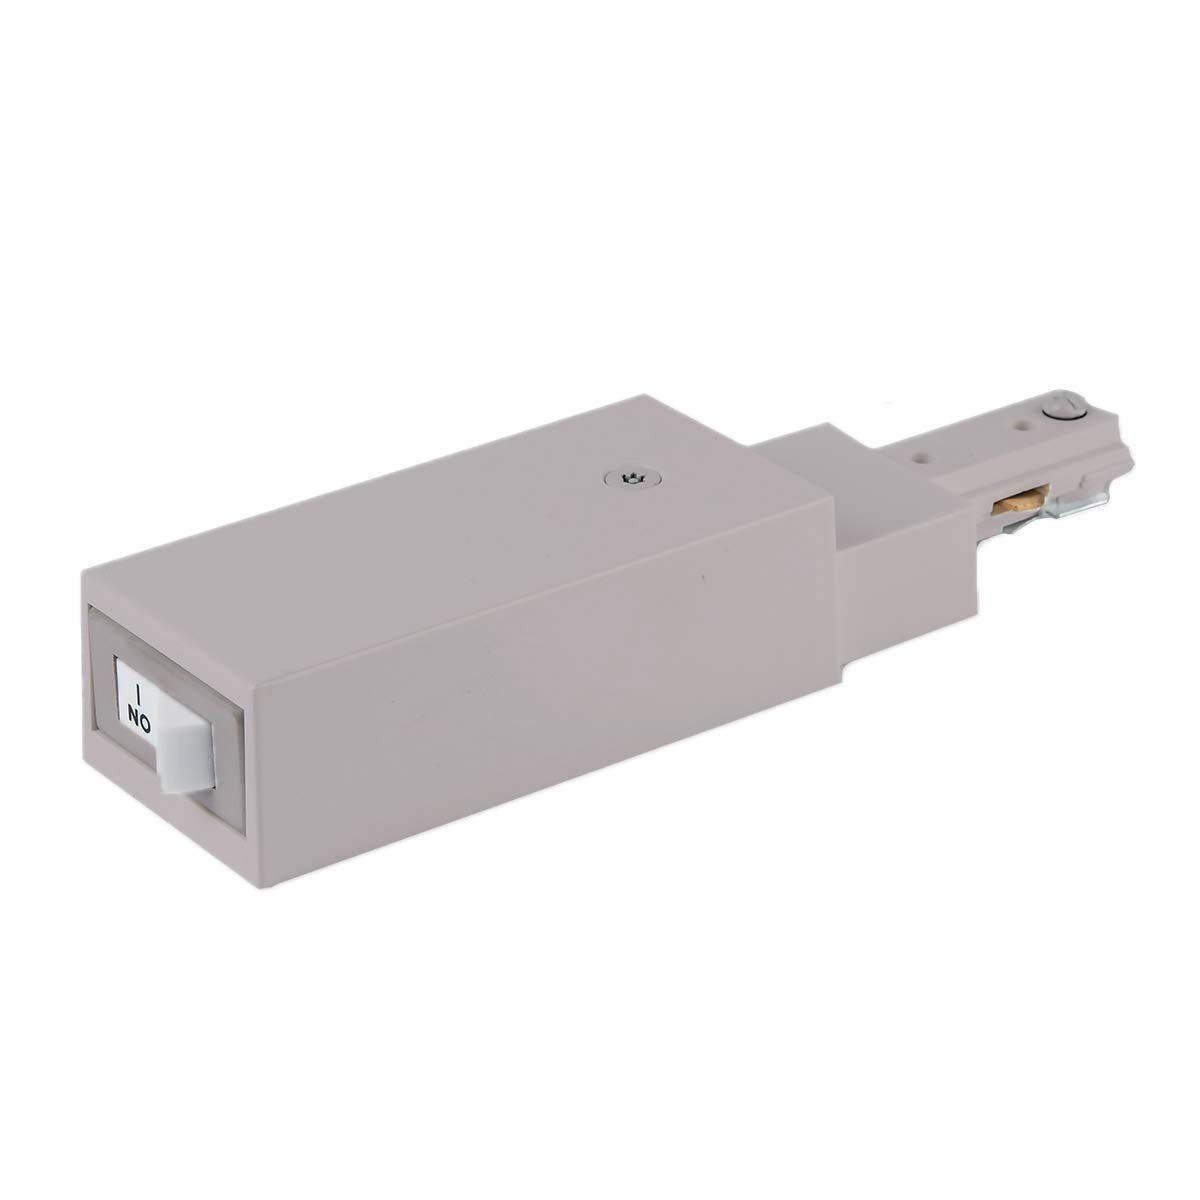 WAC Lighting THL-HLES-5A-BN H Slim Live End Connector Current Limiter with Switch Track Accessory WAC Limited